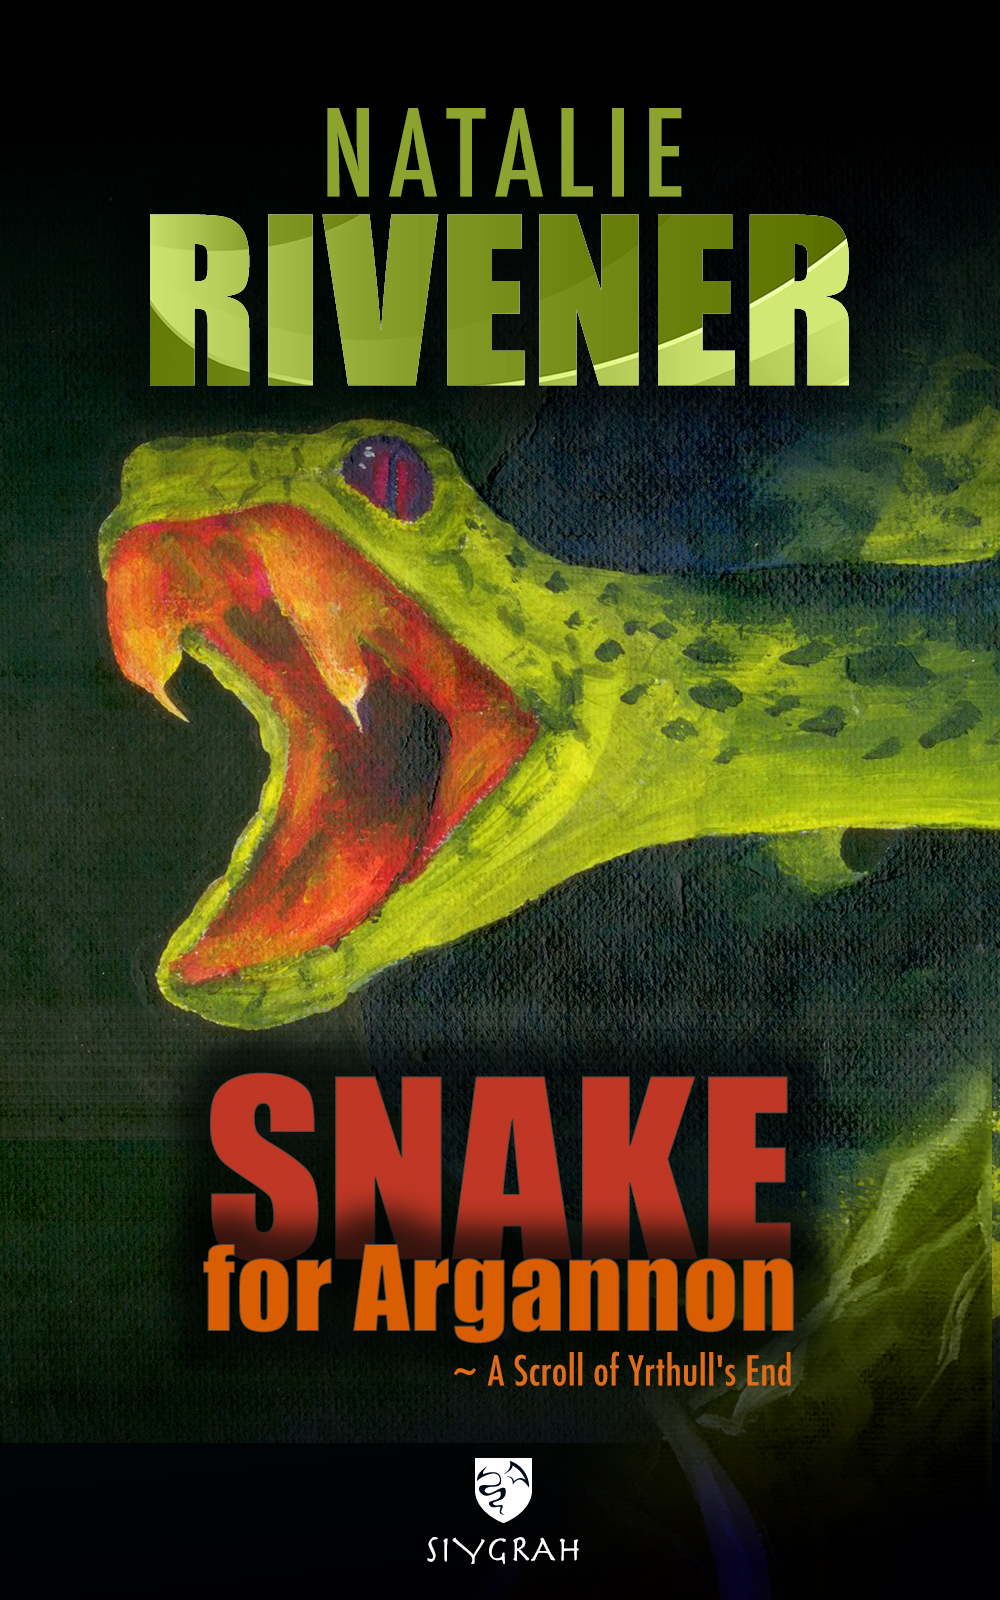 Snake for Argannon